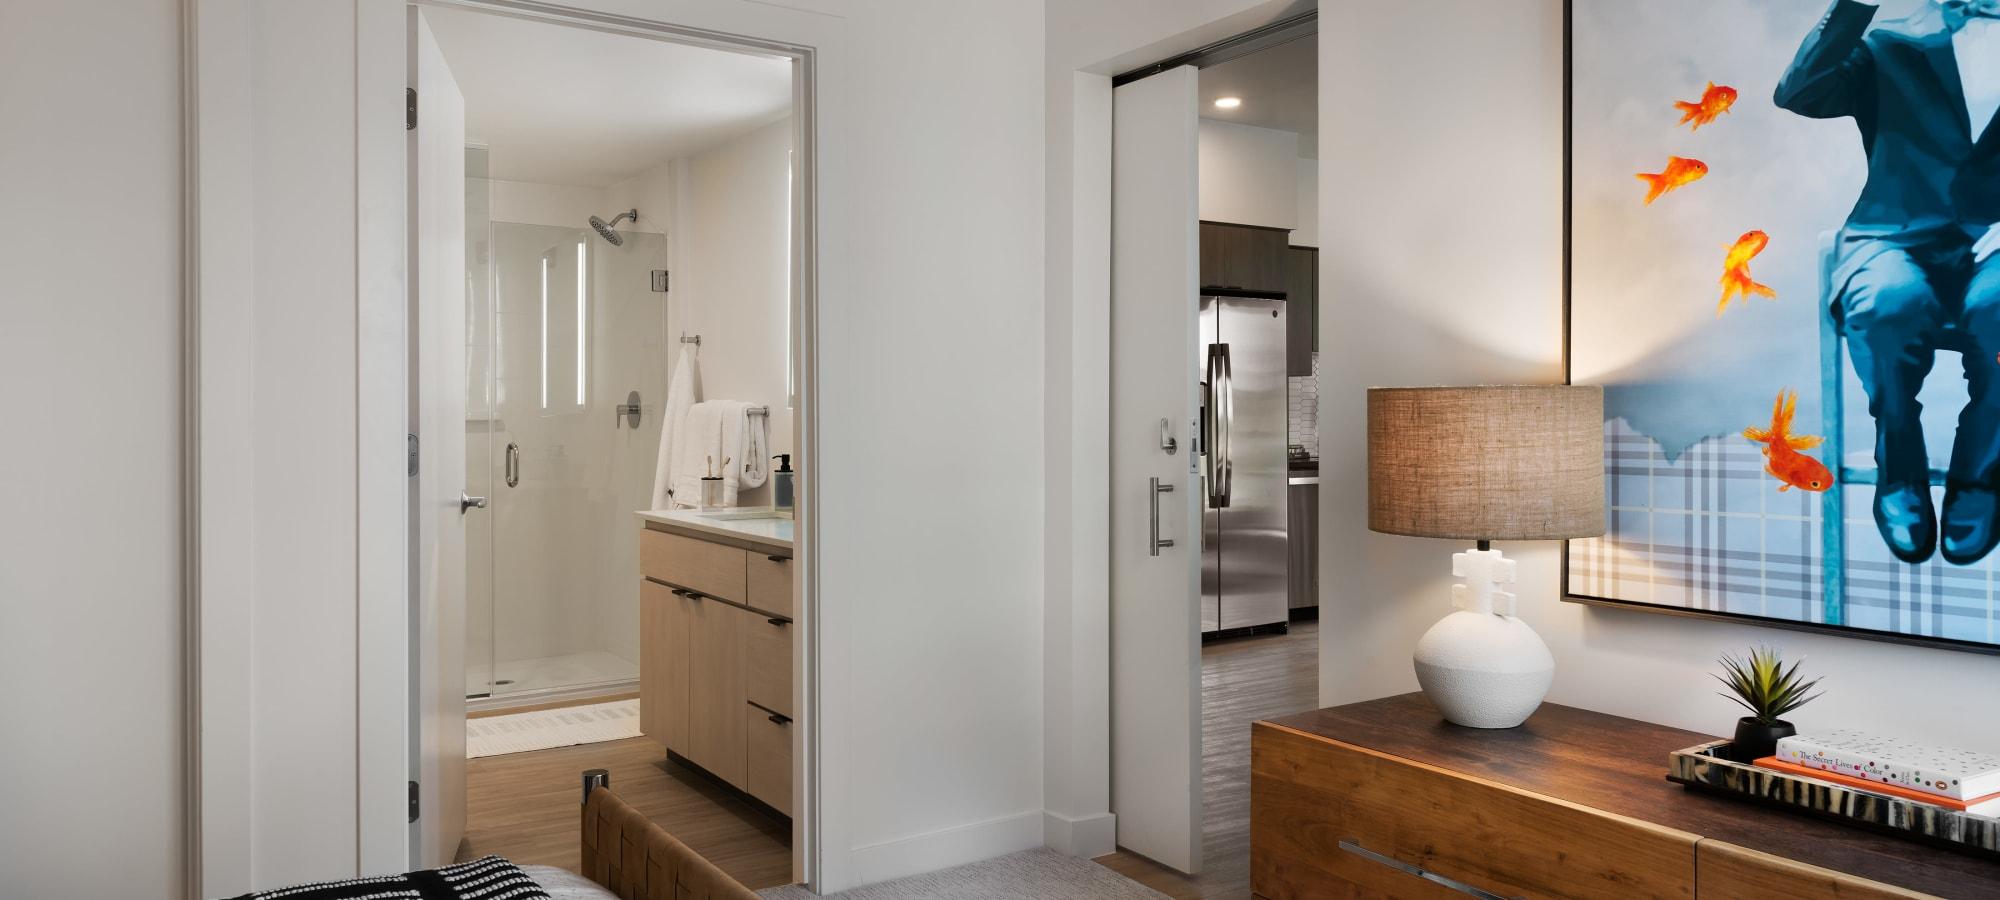 View of entrance to bedroom and bathroom at Hudson on Farmer in Tempe, Arizona